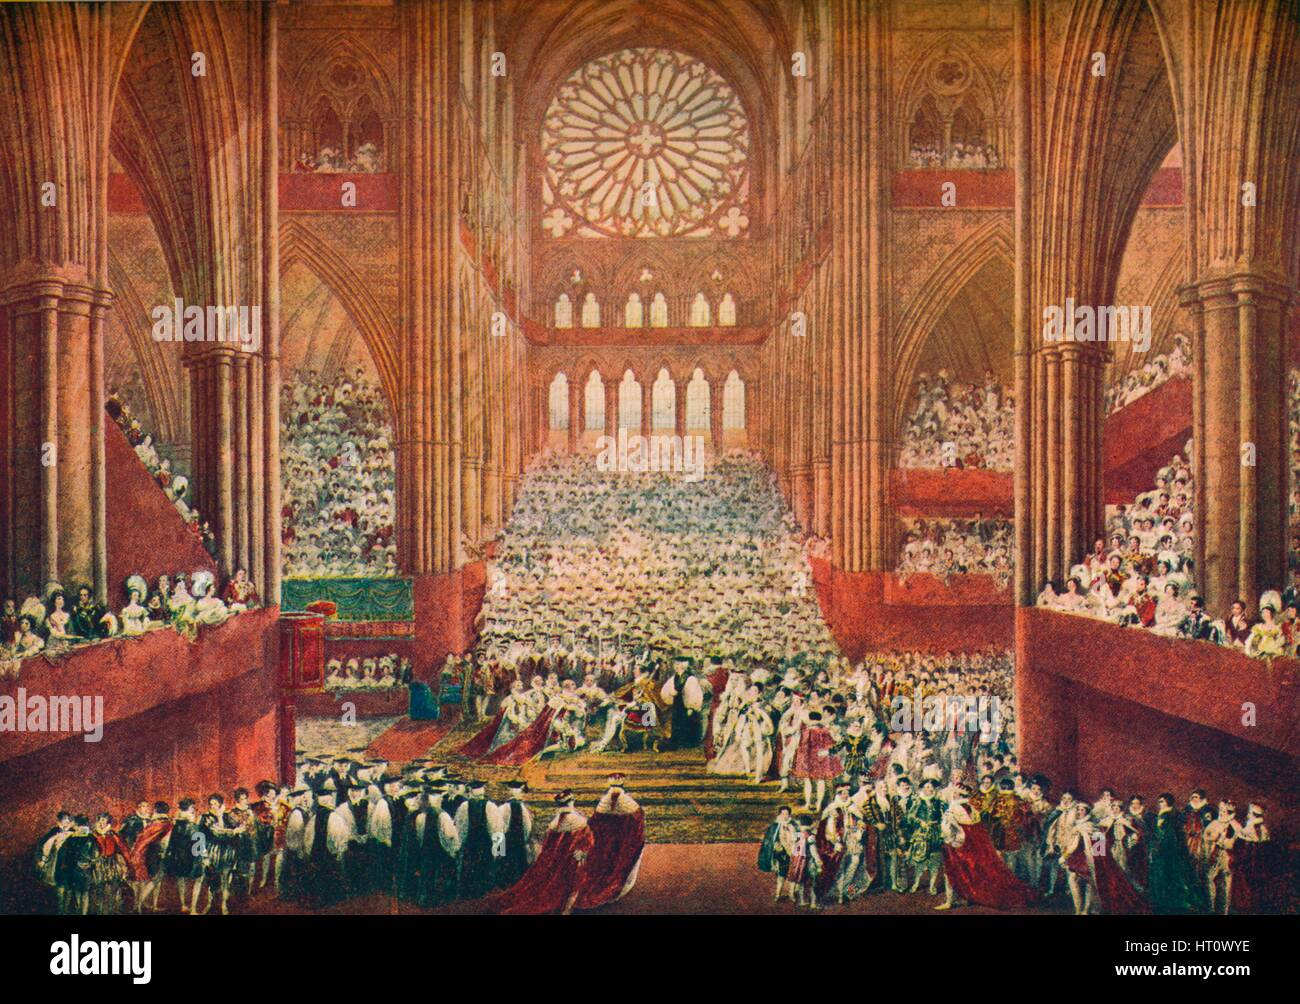 The Coronation of King George IV in Westminster Abbey, London, 1821 (1906).  Artist: Pugin & Stephanoff. - Stock Image